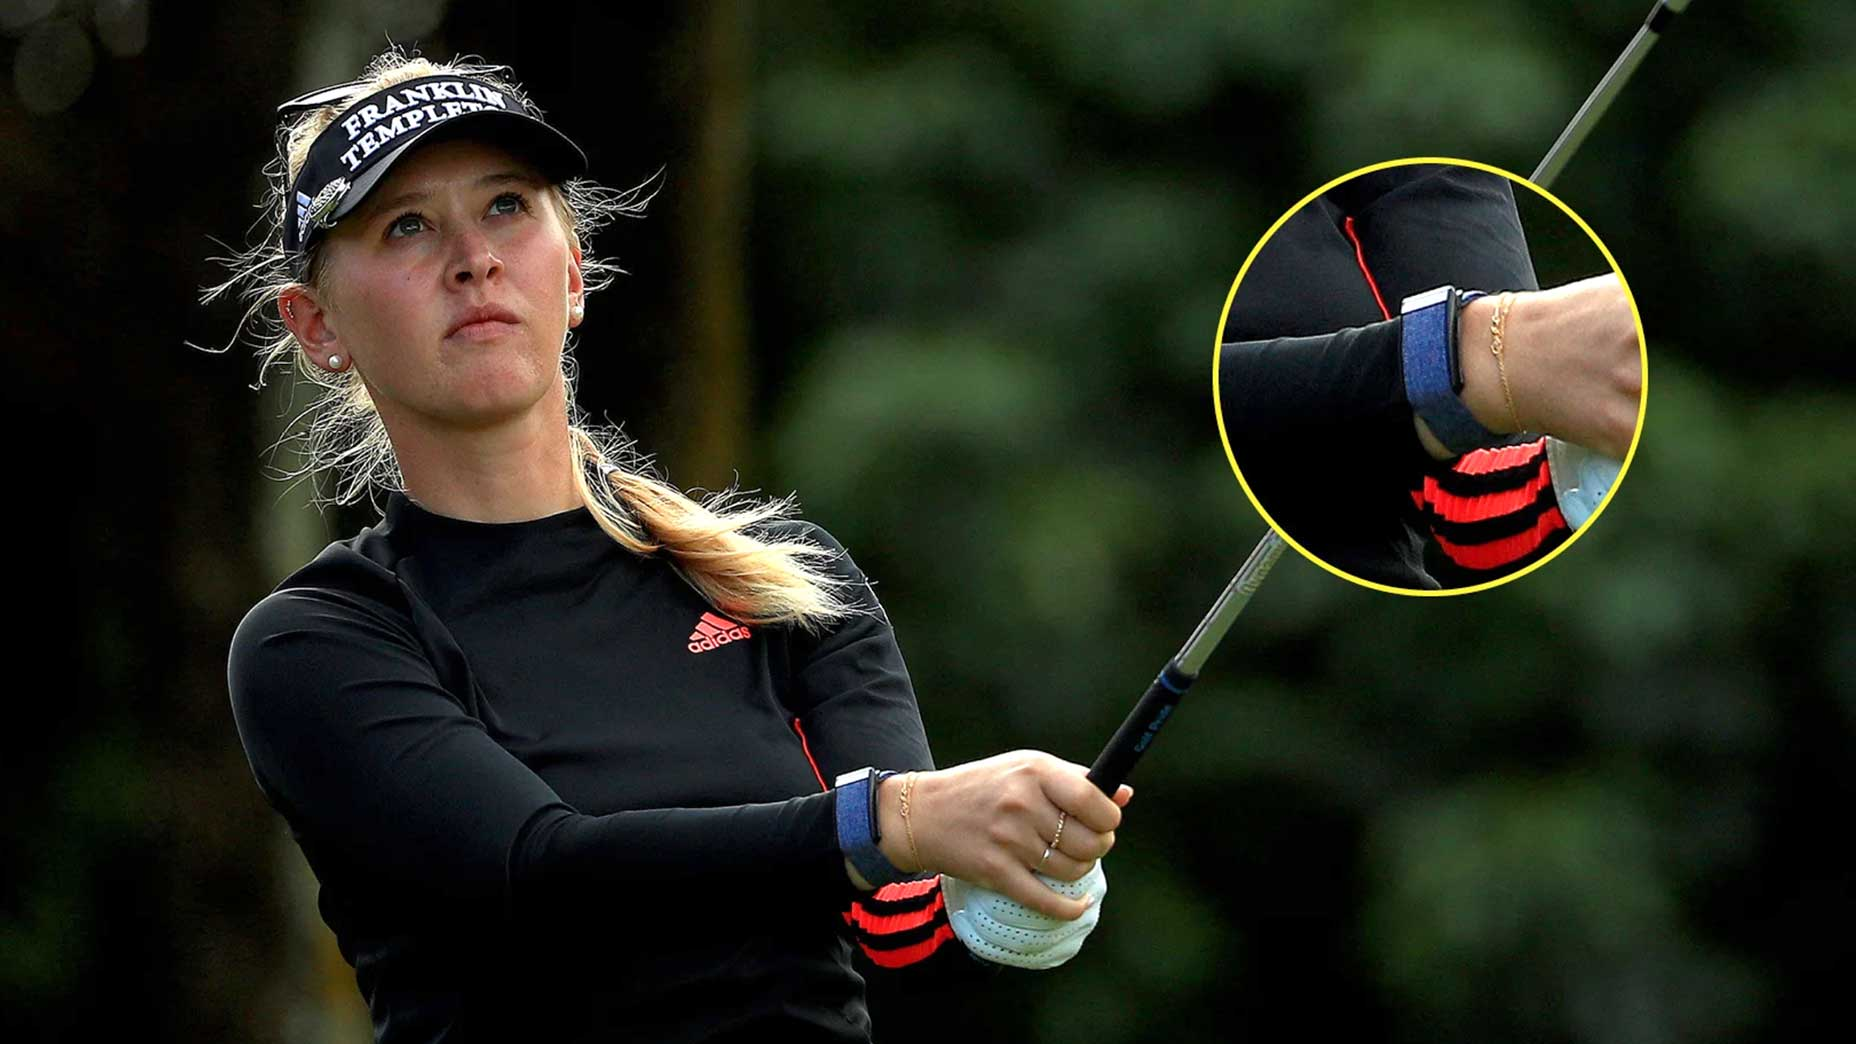 Some LPGA players including Jessica Korda already wear WHOOP straps.